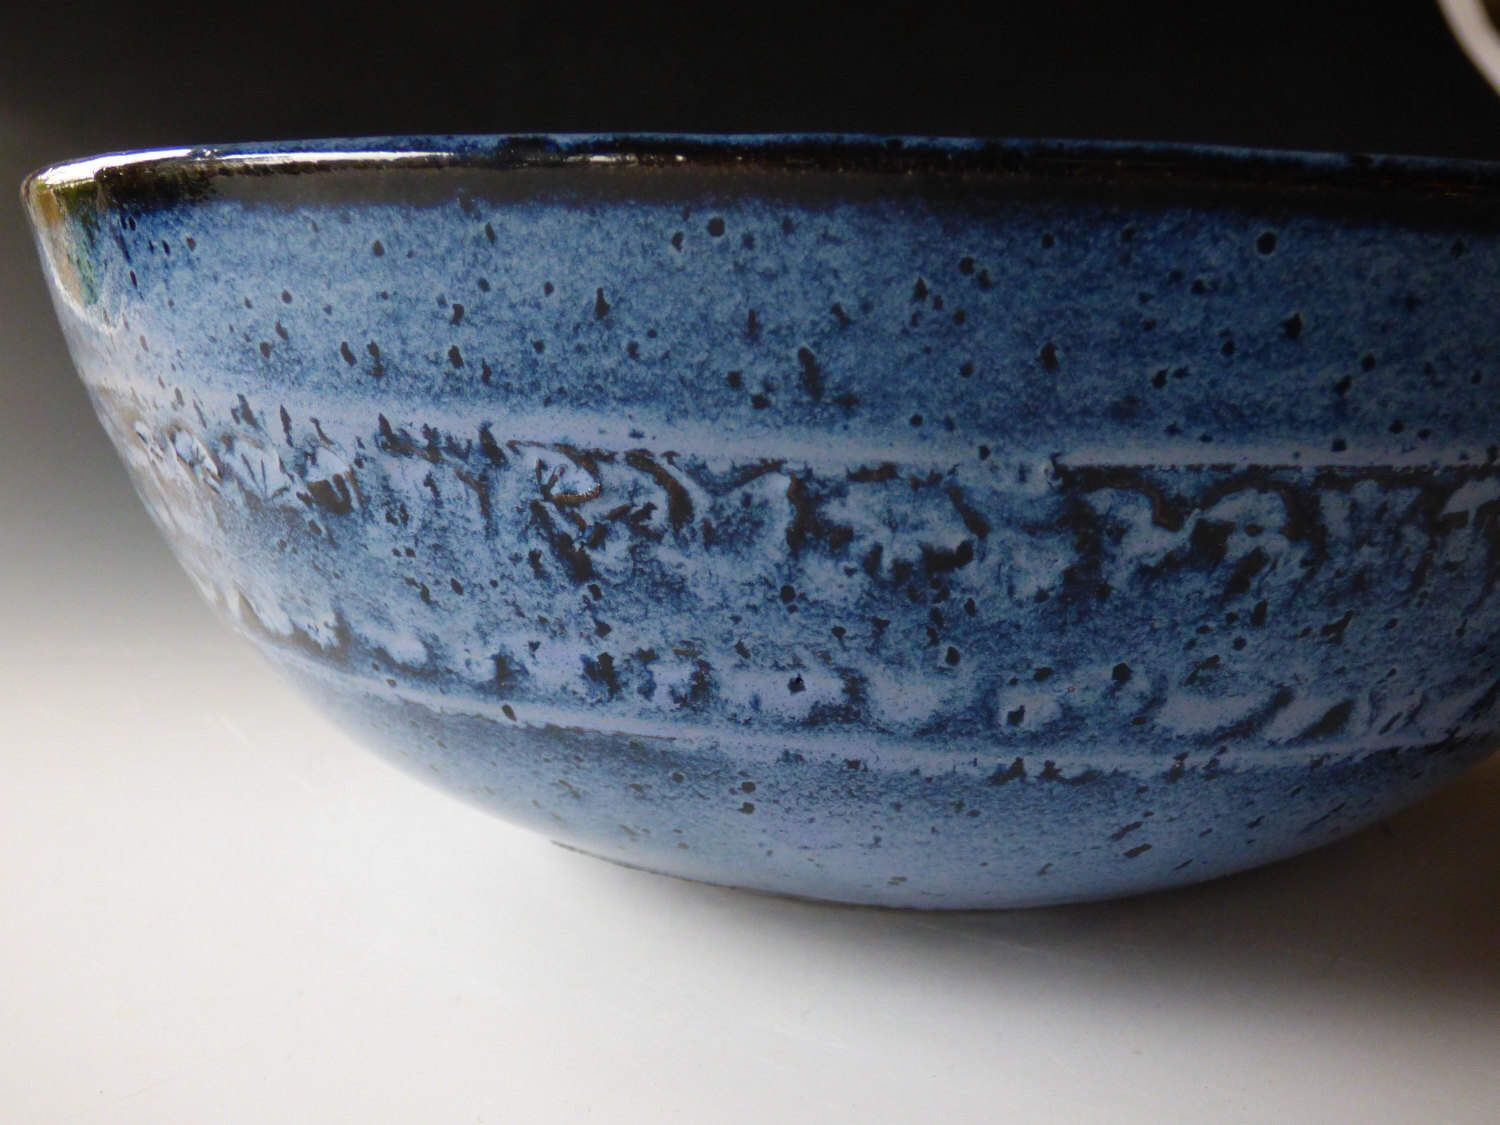 banded blue bowl by MollyDuttonPottery on Etsy https://www.etsy.com/listing/491462574/banded-blue-bowl